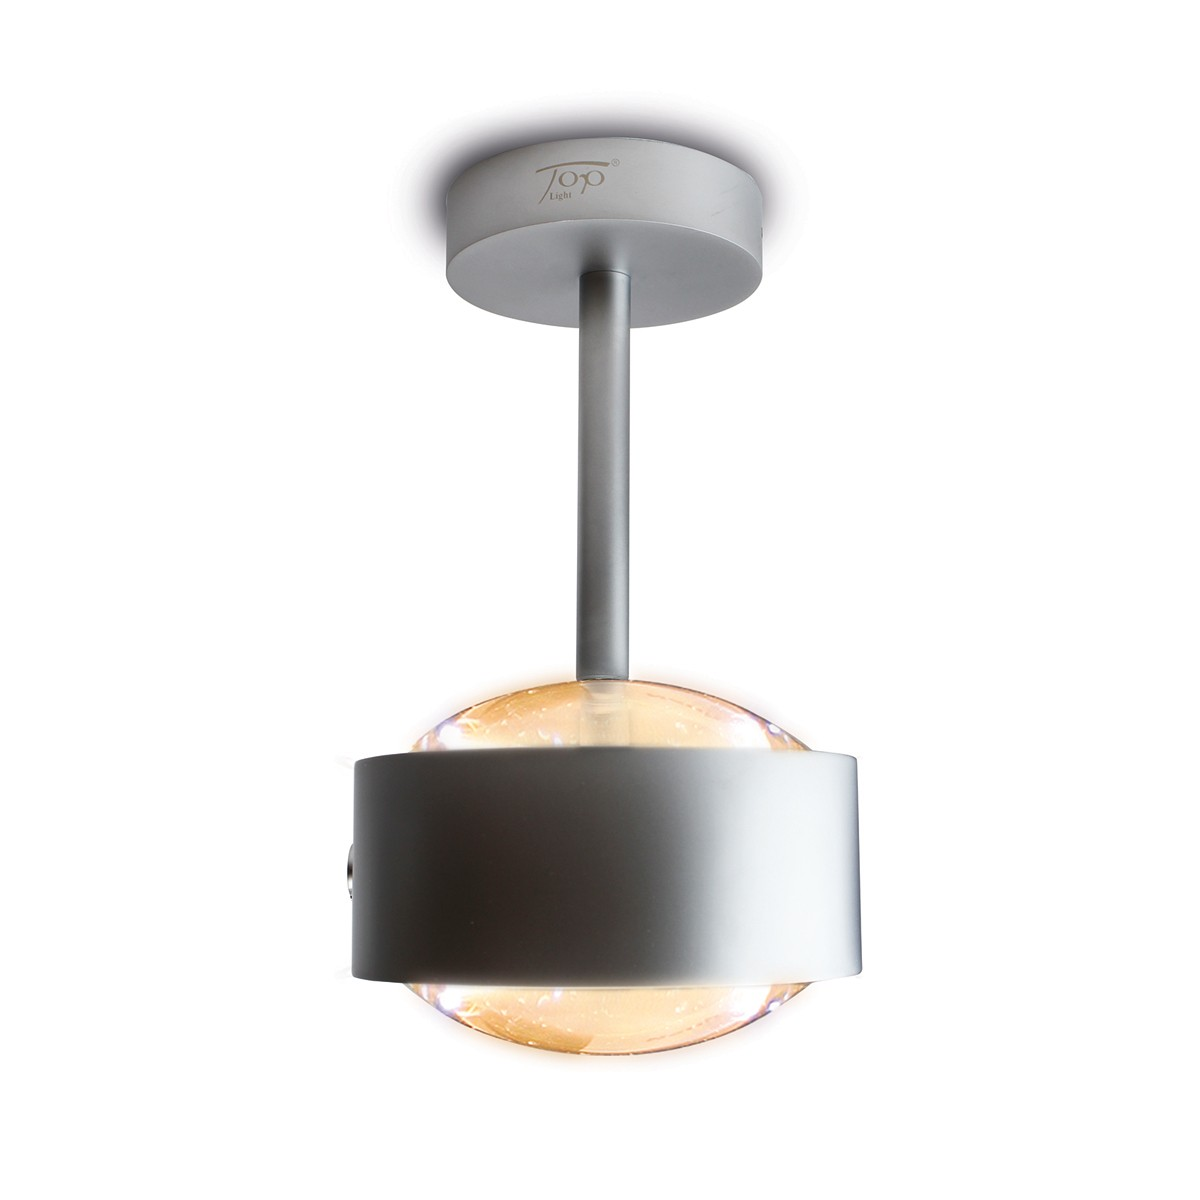 Top Light Puk Maxx Eye Ceiling Deckenleuchte